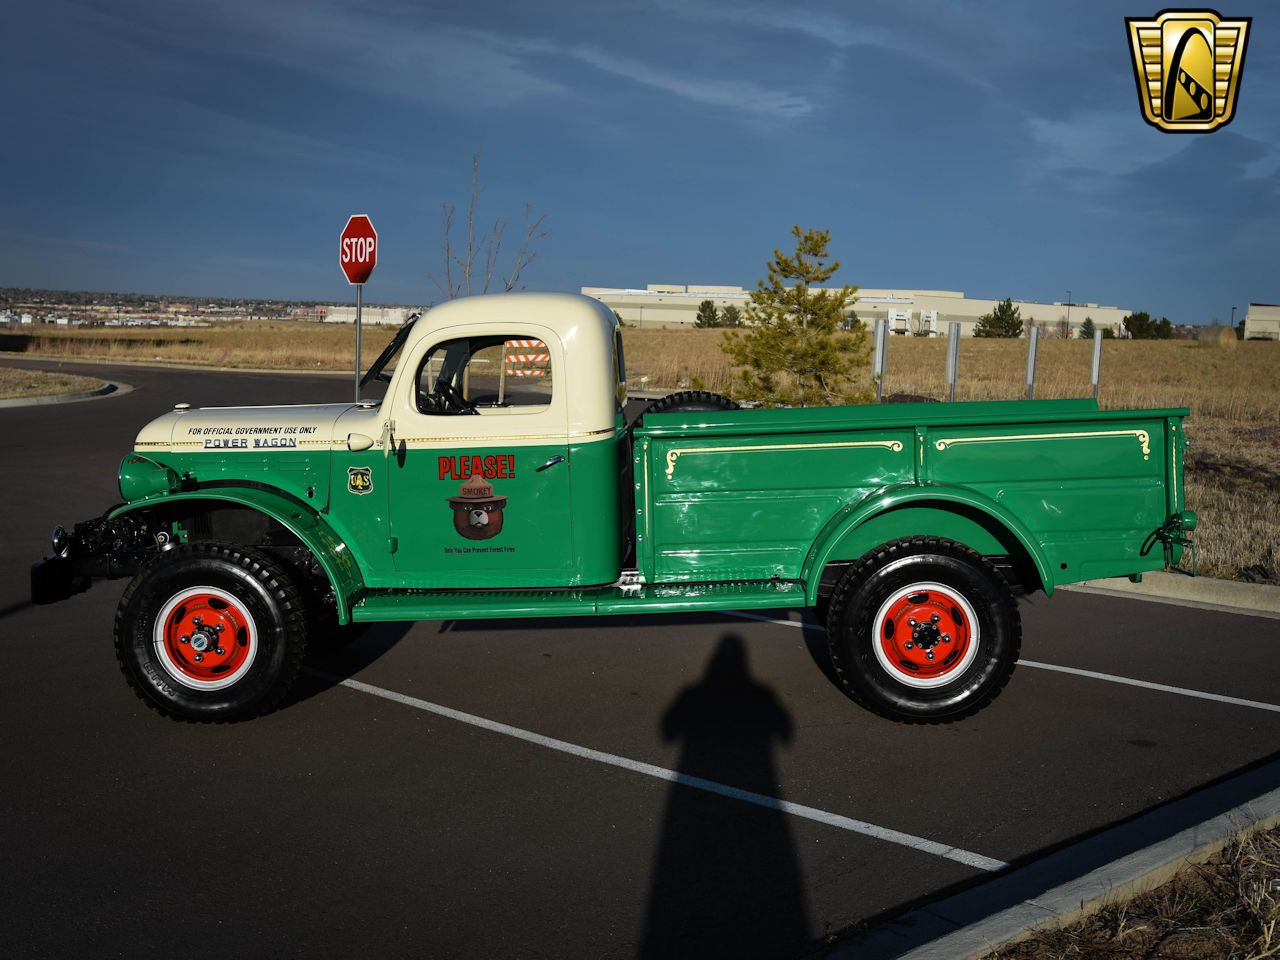 For Sale In Our Denver Colorado Showroom Is A Green And White 1954 Dodge Power Wagon